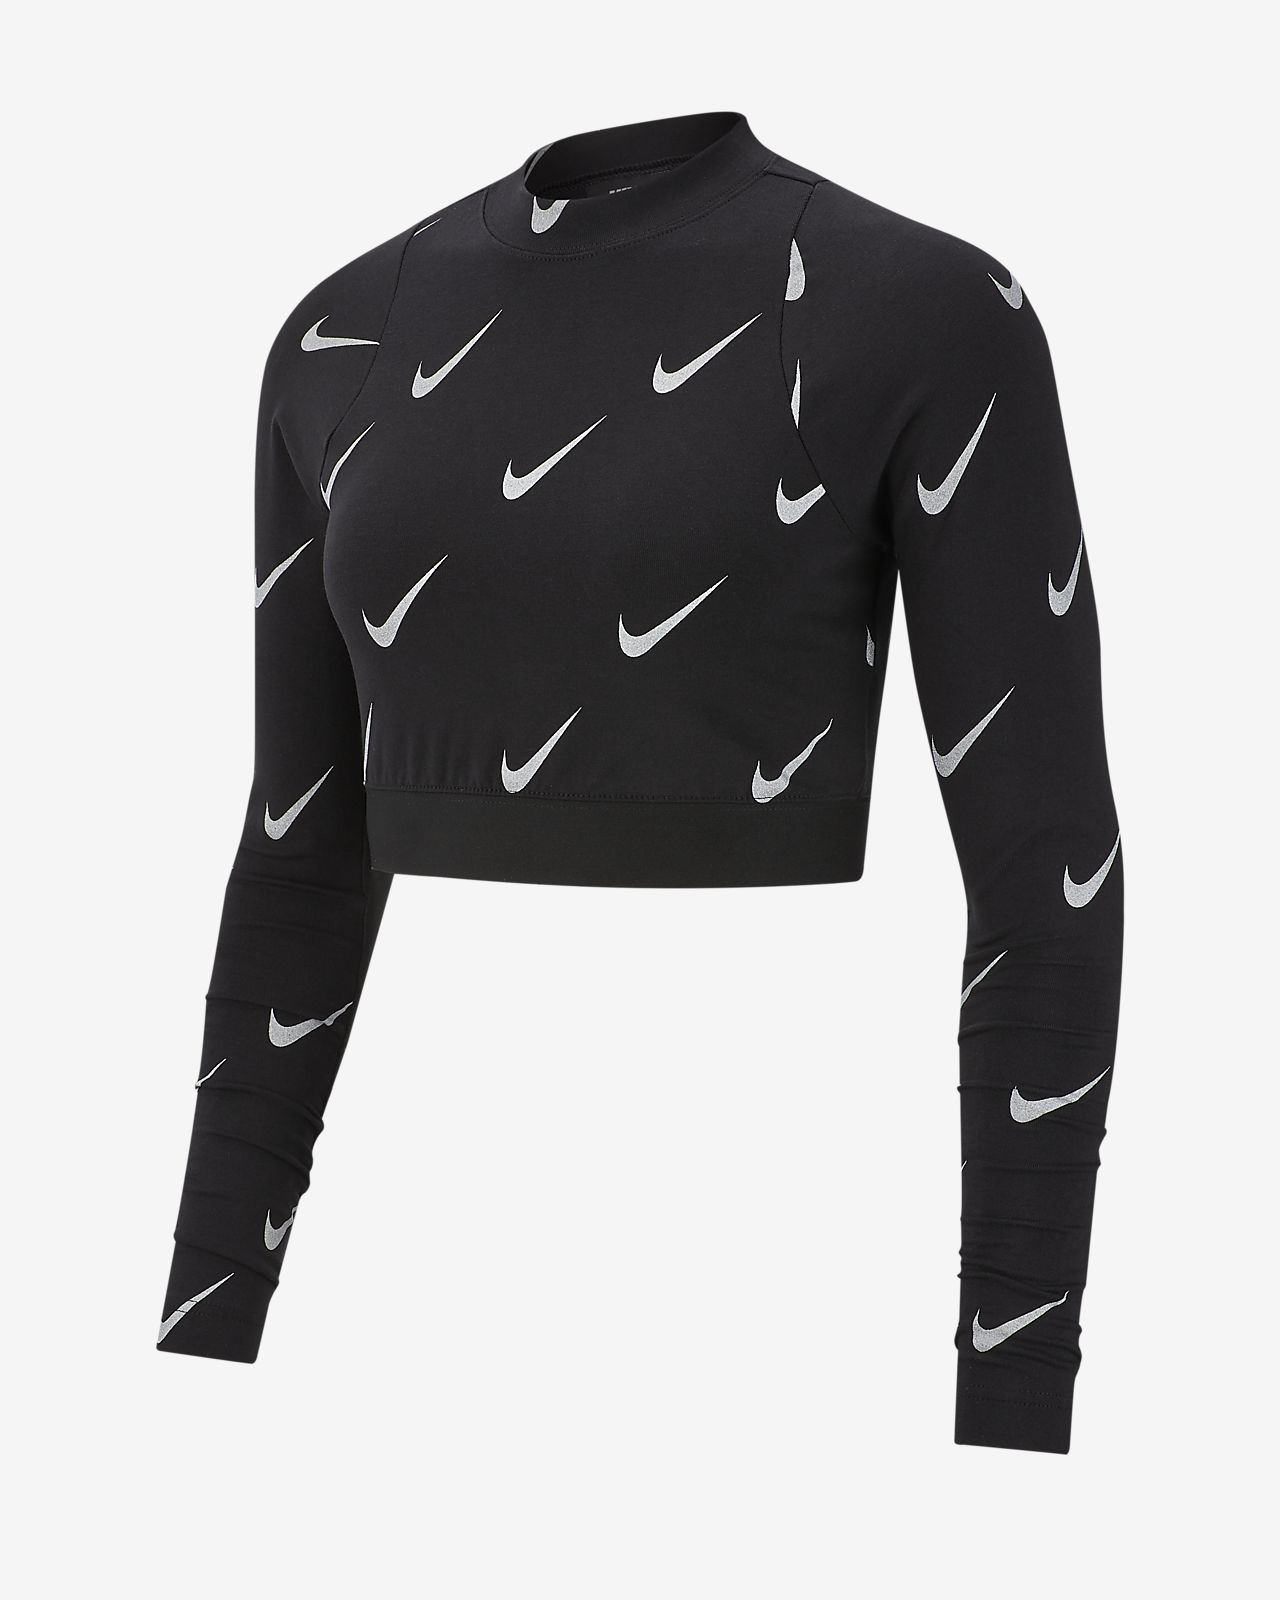 e4cb76f8a3 Nike Sportswear Women s Metallic Long-Sleeve Crop Top. Nike.com AU